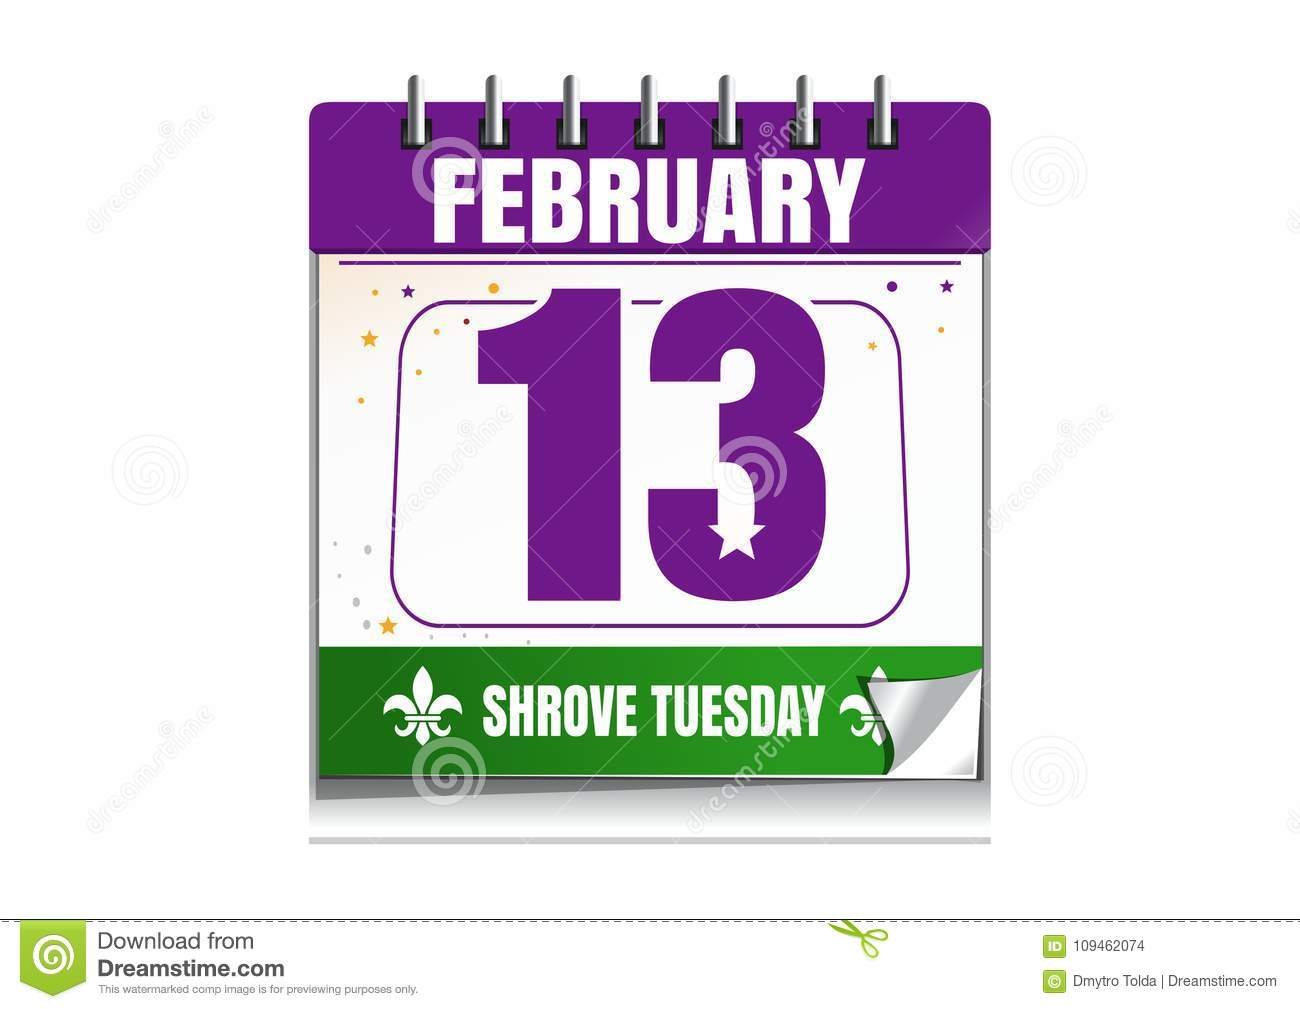 Why is tuesday called tuesday 9